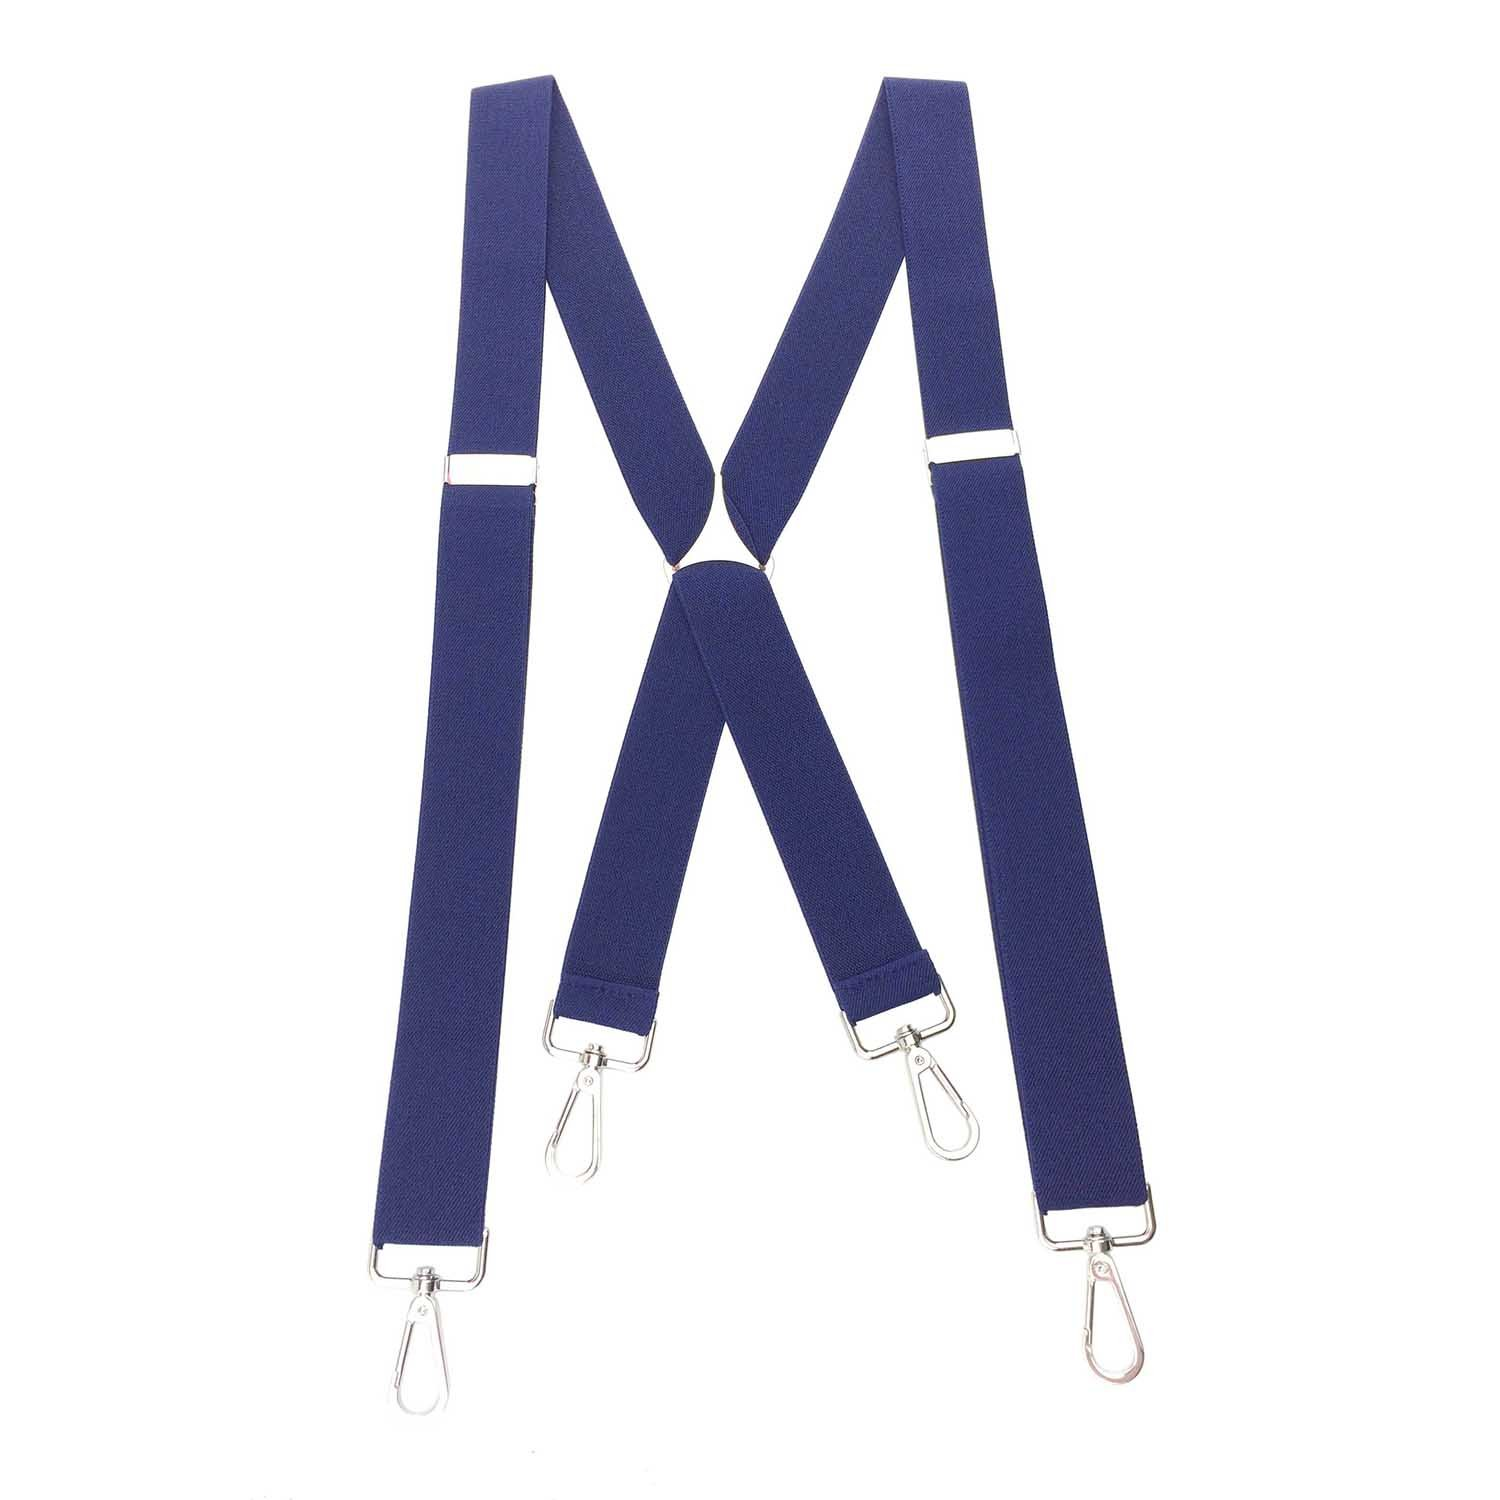 Romanlin Suspenders for Men with Swivel Hooks on Belts Heavy Duty Big and Tall Adjustable Navy Blue